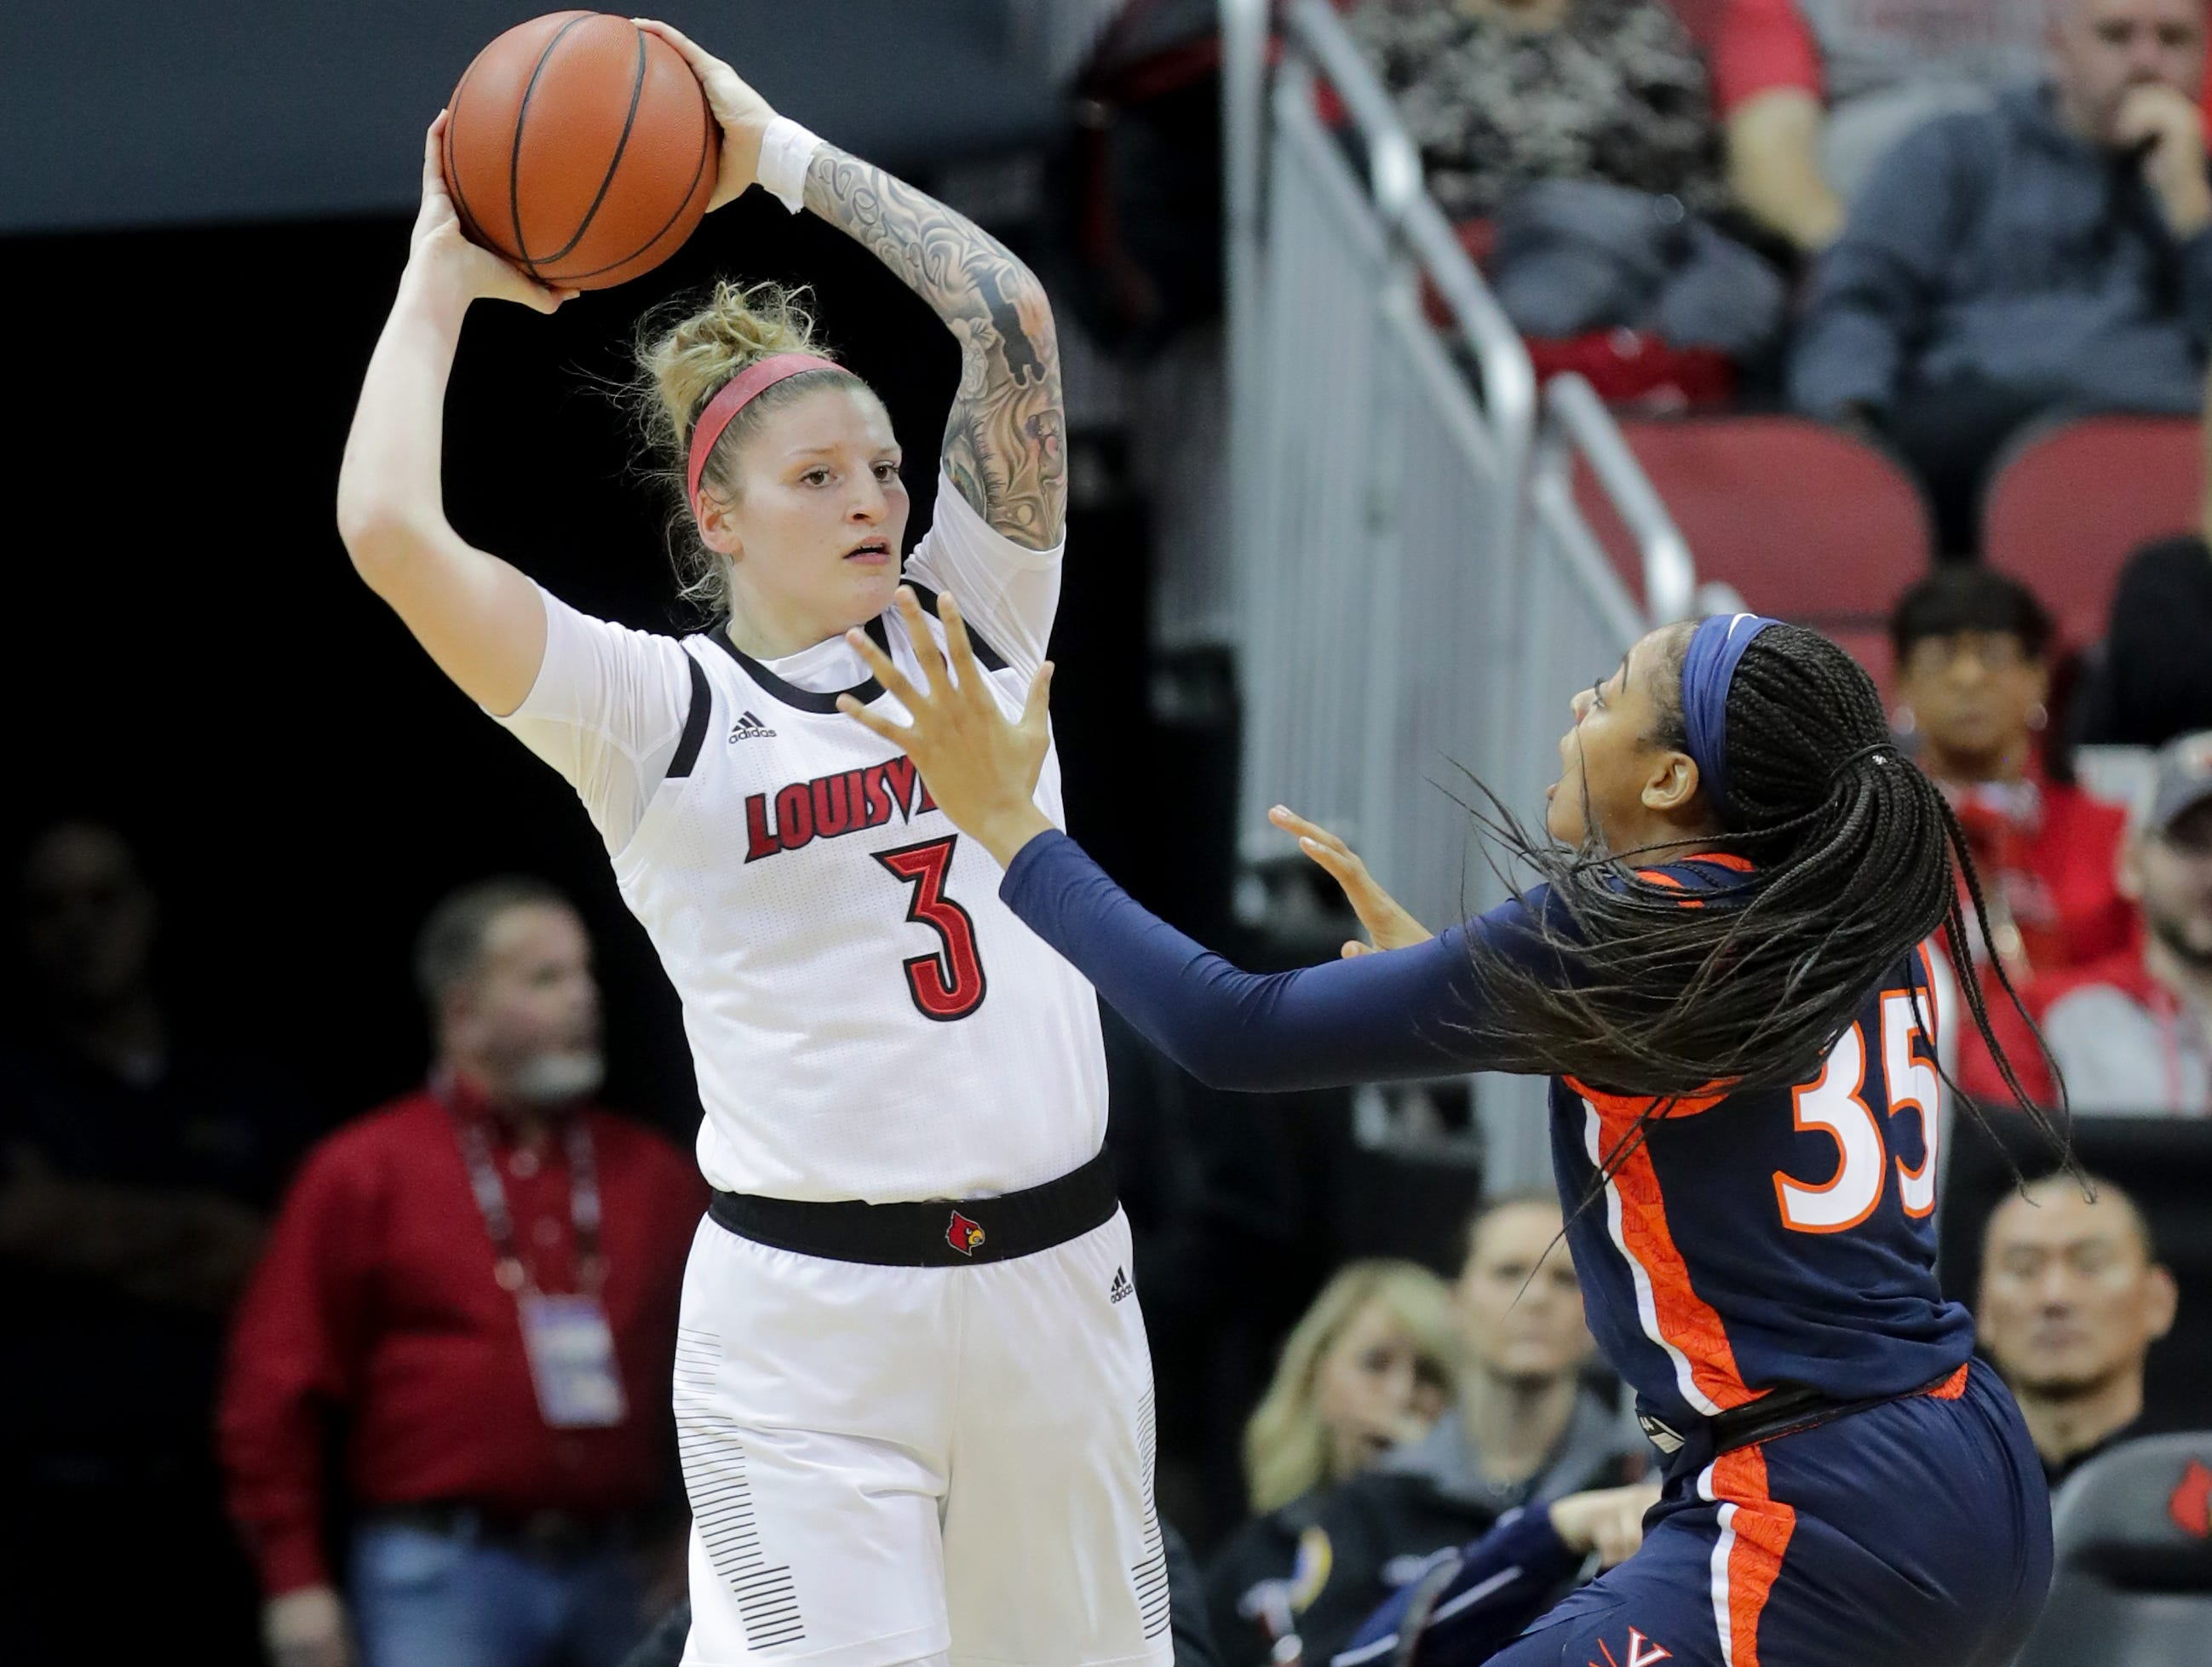 Louisville's Sam Fuerhring is guarded by Virginia's Shakyna Payne.